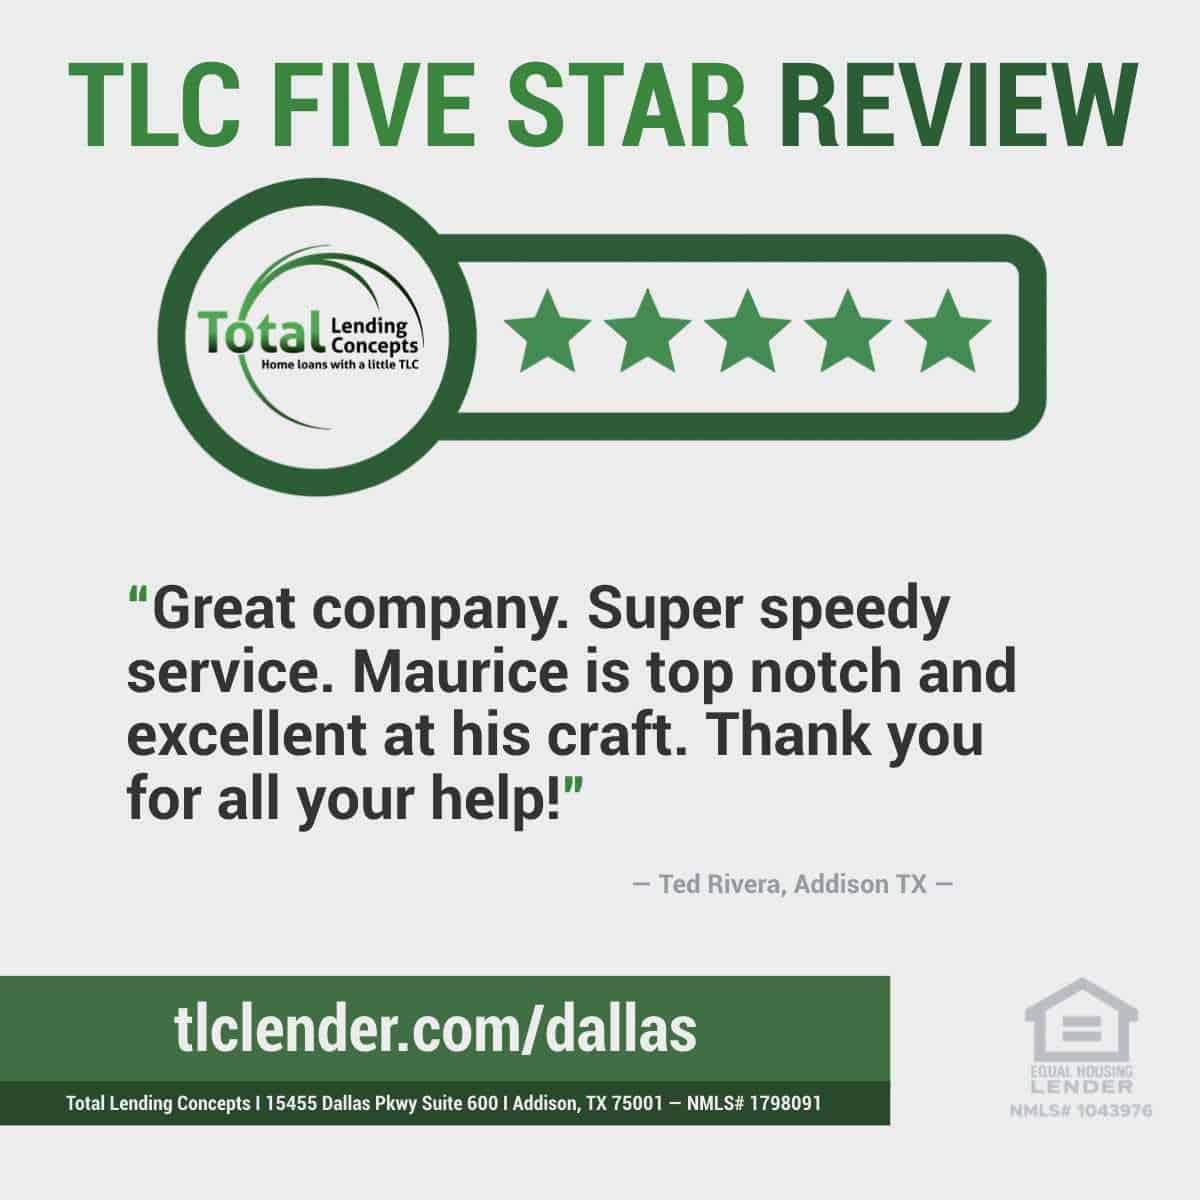 Total Lending Concepts Five Star Review Maurice in Addison Texas for Ted Rivera